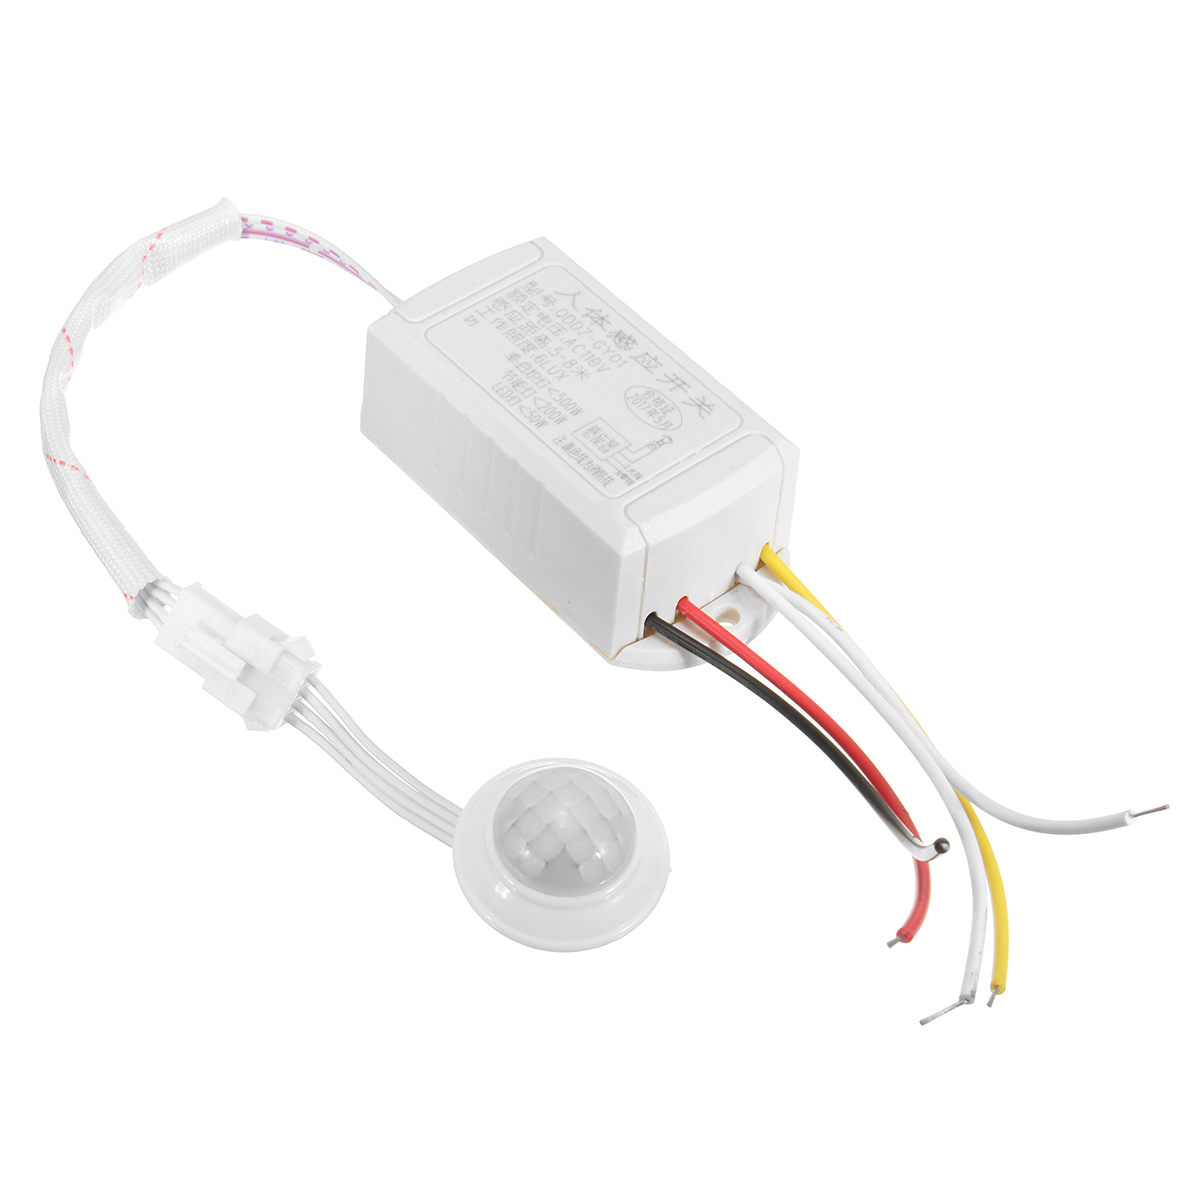 110V IR Infrared Body Motion Sensor Automatic Light Lamp Control Switch Motion Sensor Switch